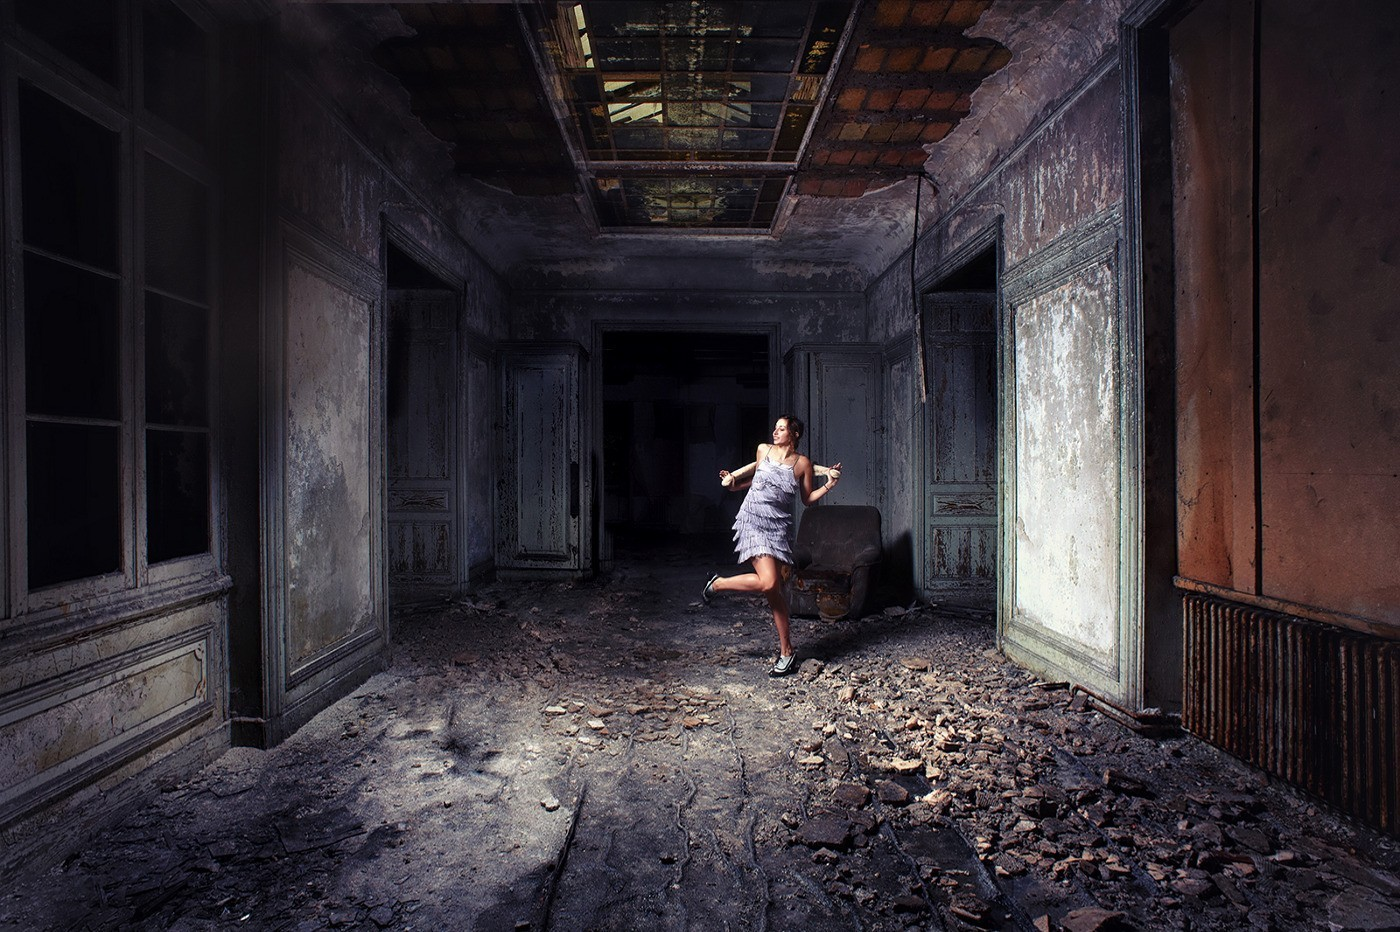 Dancing on the decay of the world